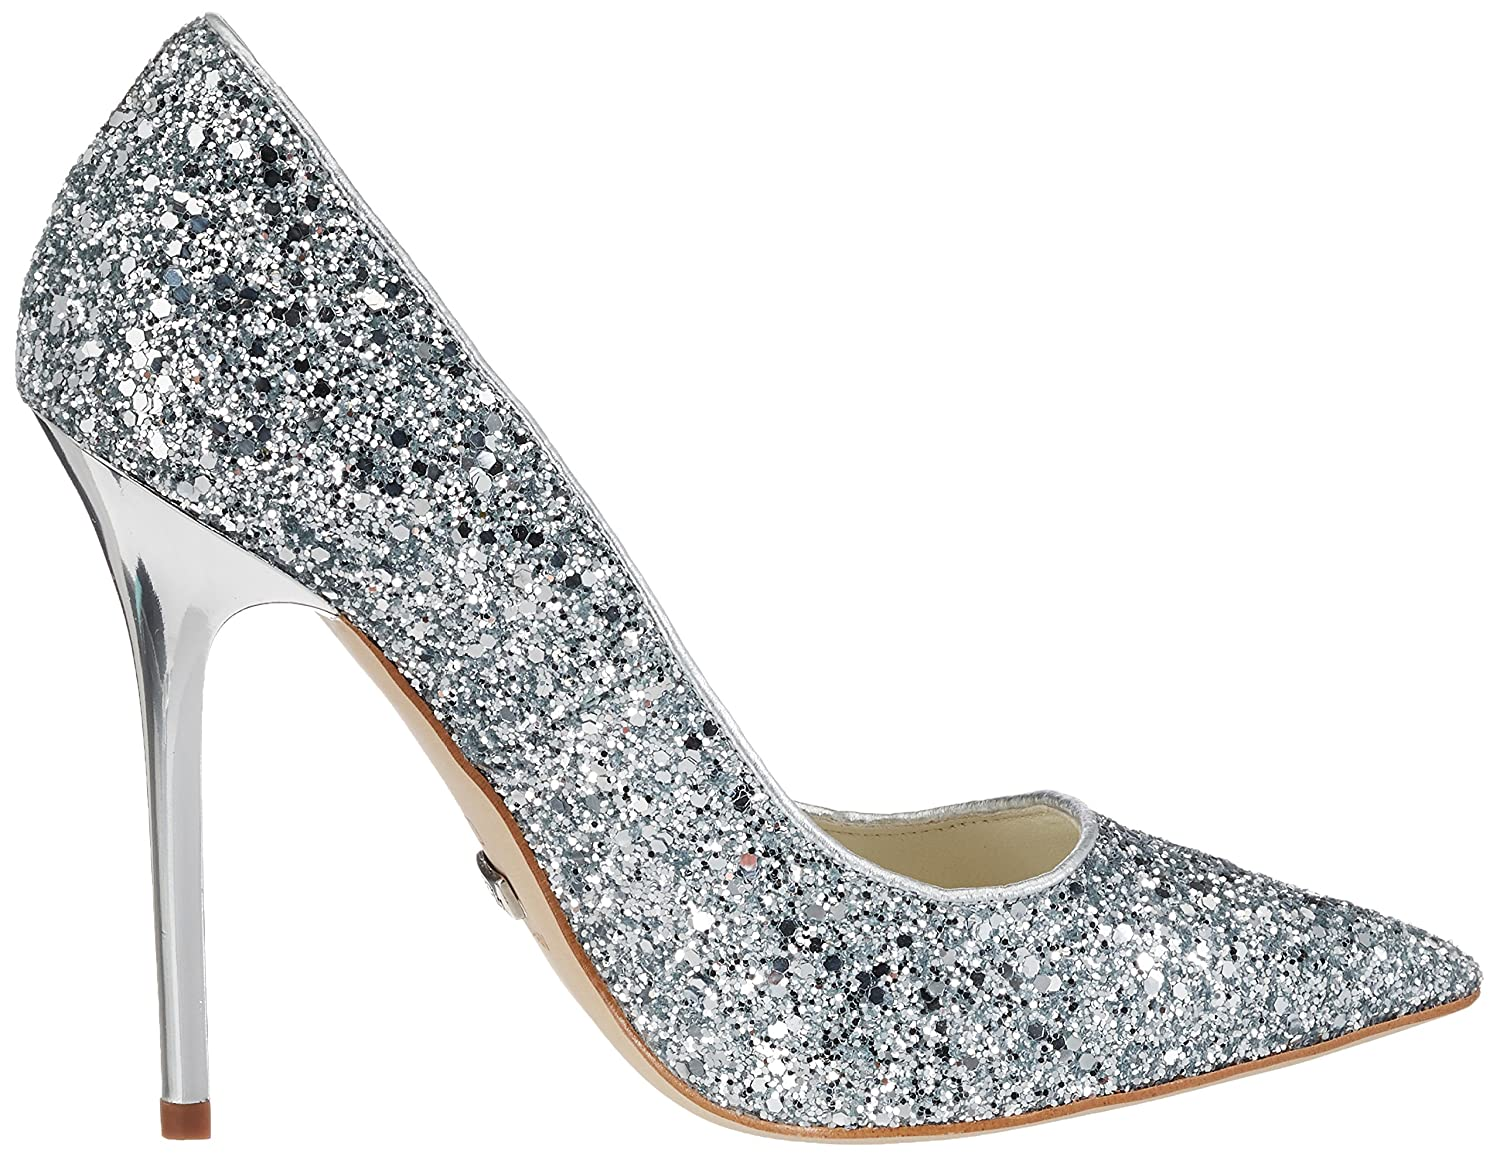 Womens 11335-269 L Glitter Closed-Toe Pumps Buffalo